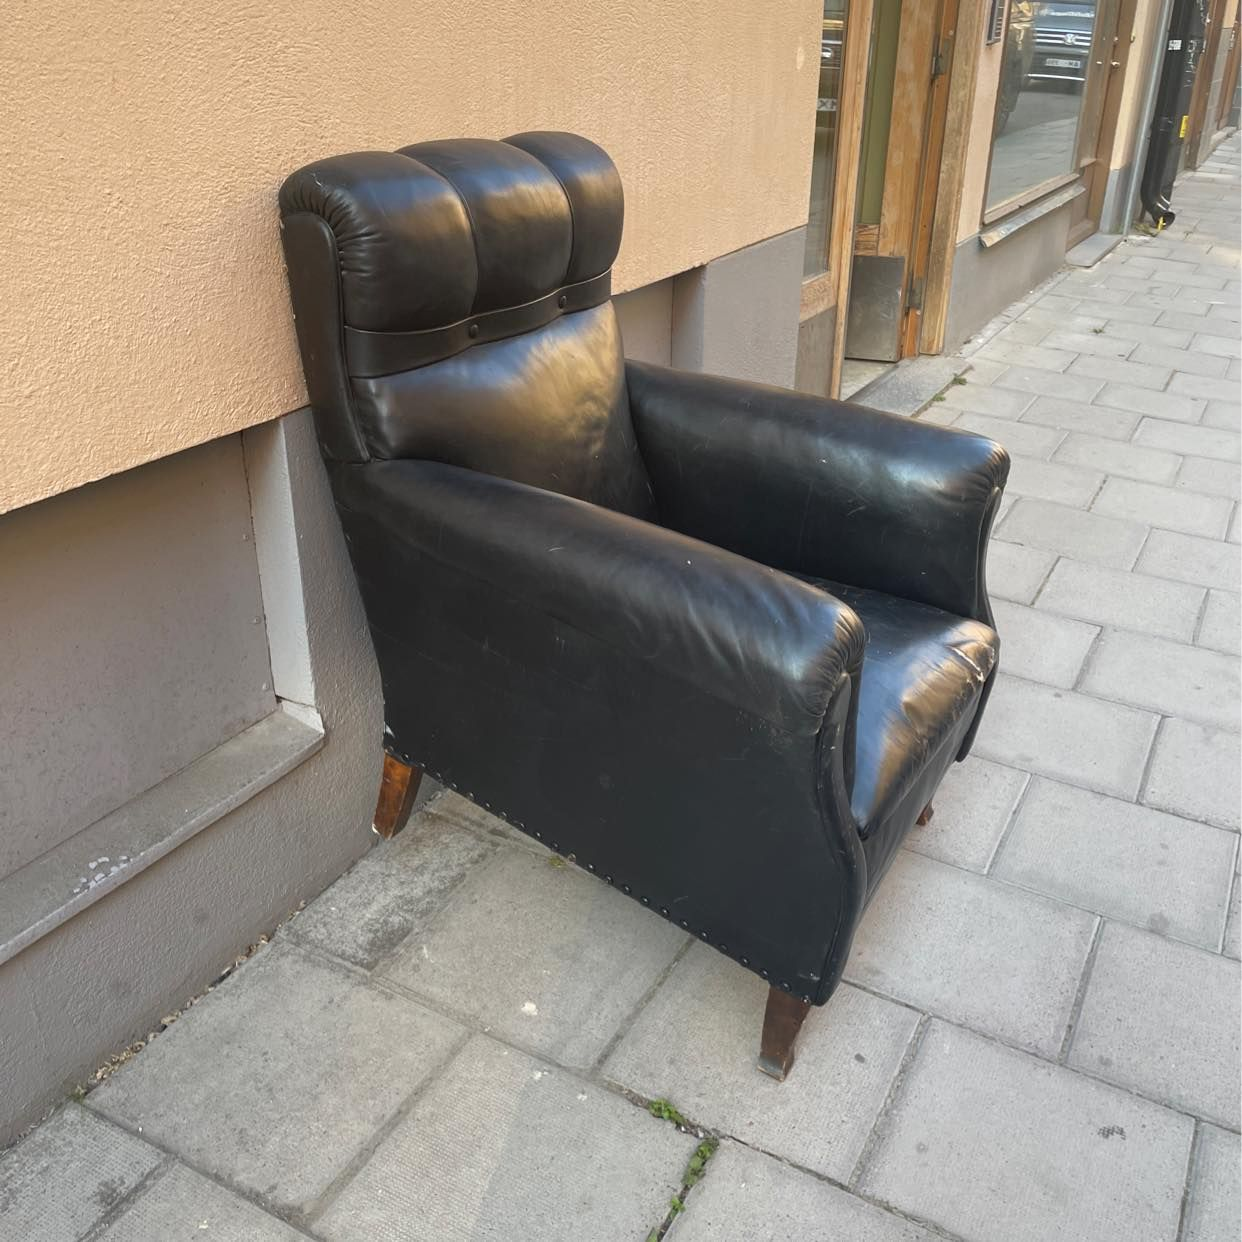 image of Throw away this chair - Stockholm City